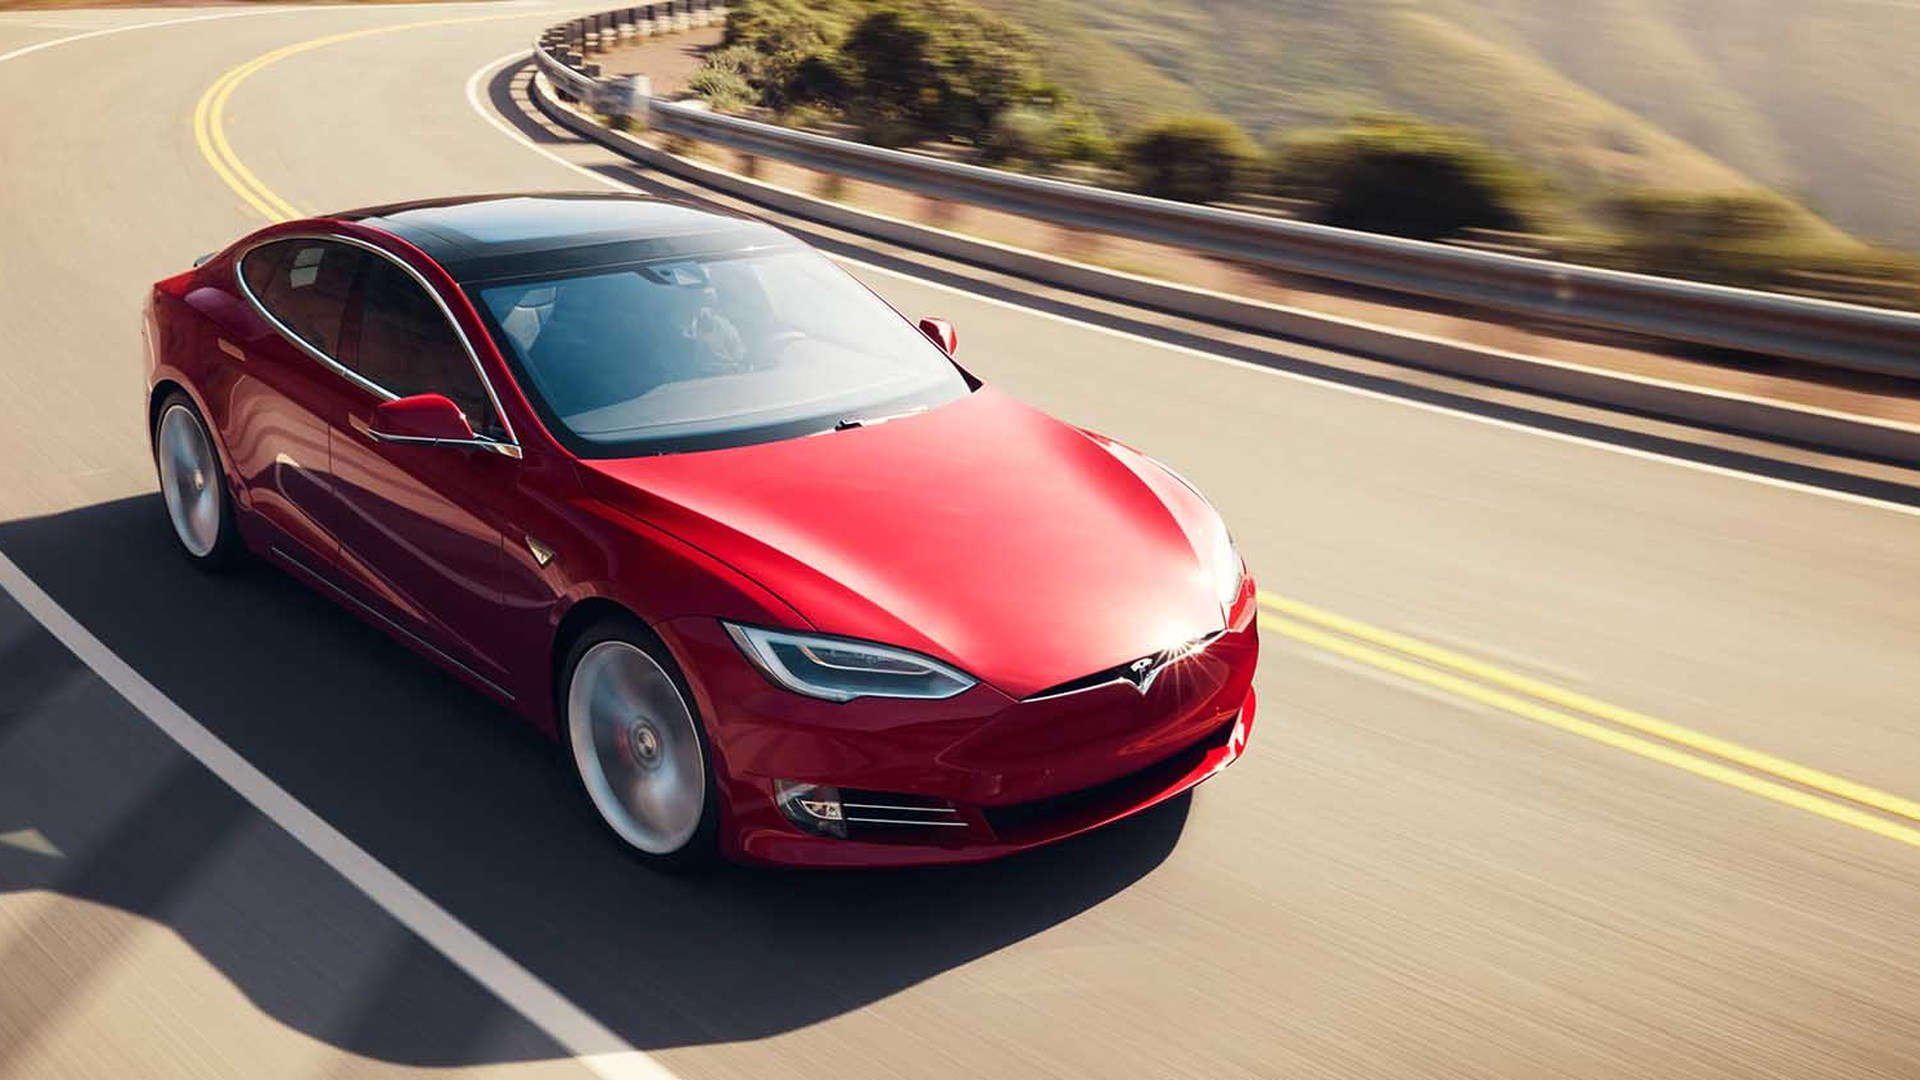 Tesla Improves Model S Model X Acceleration With Cheetah Stance Mode